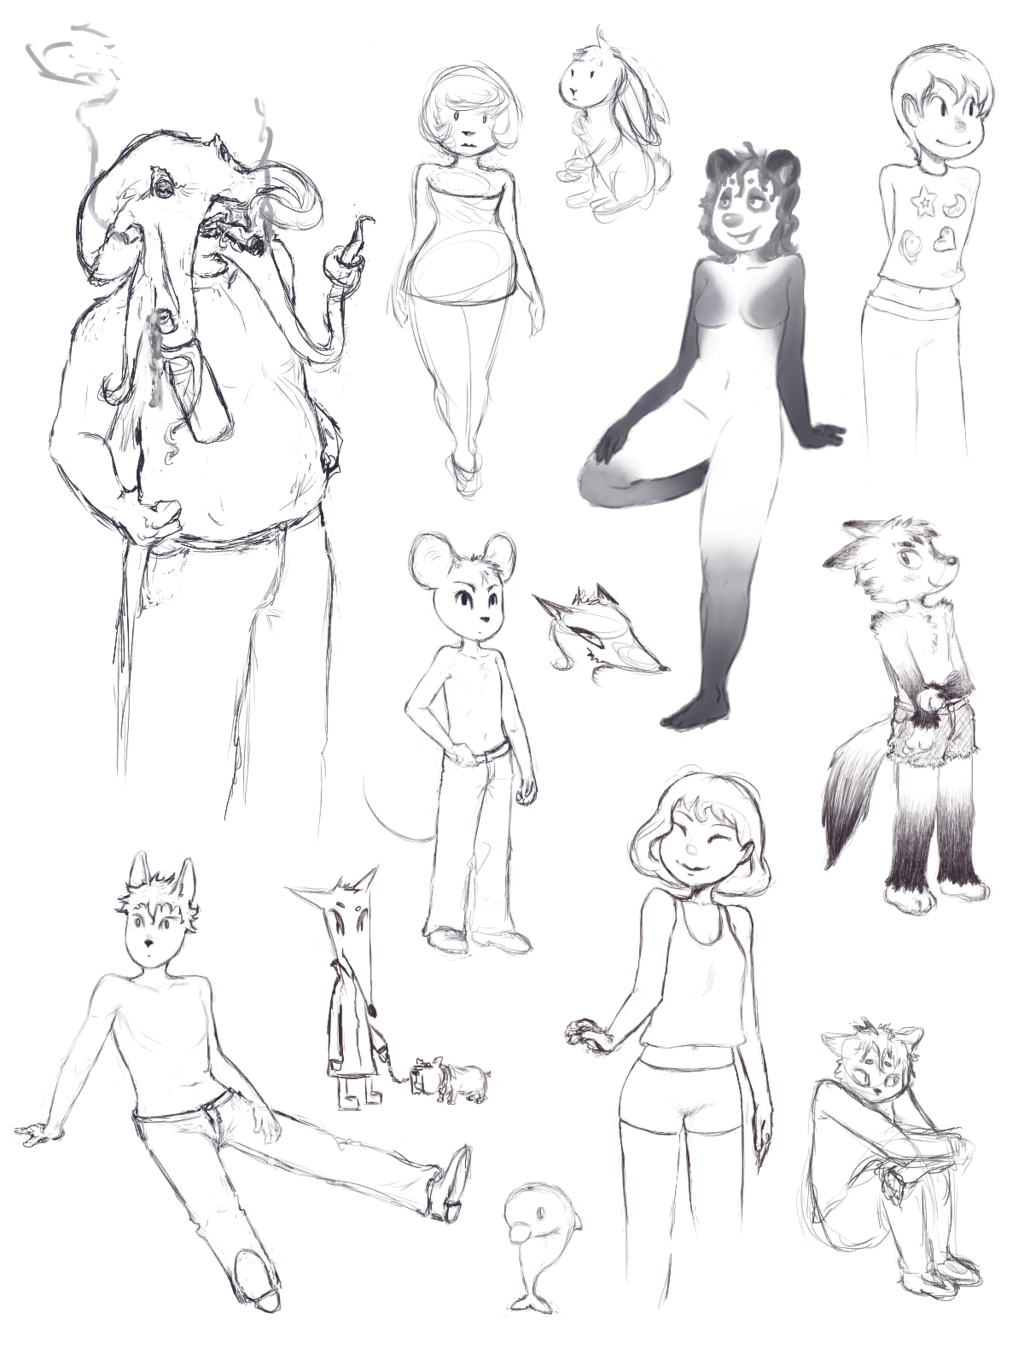 Most recent image: Doodles VI